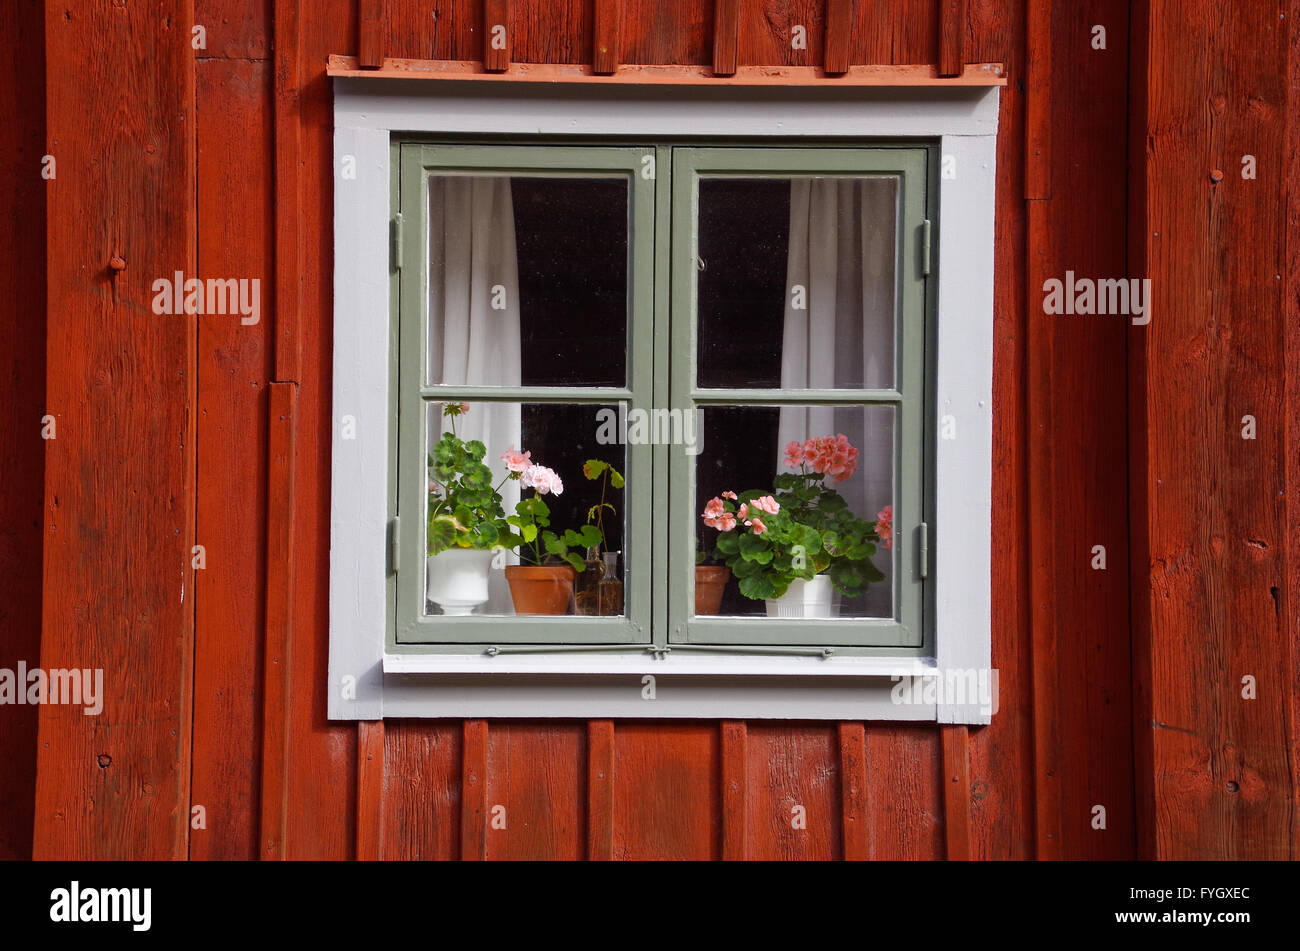 Square window with flowers on the sill in Gamla Linköping, Sweden - Stock Image